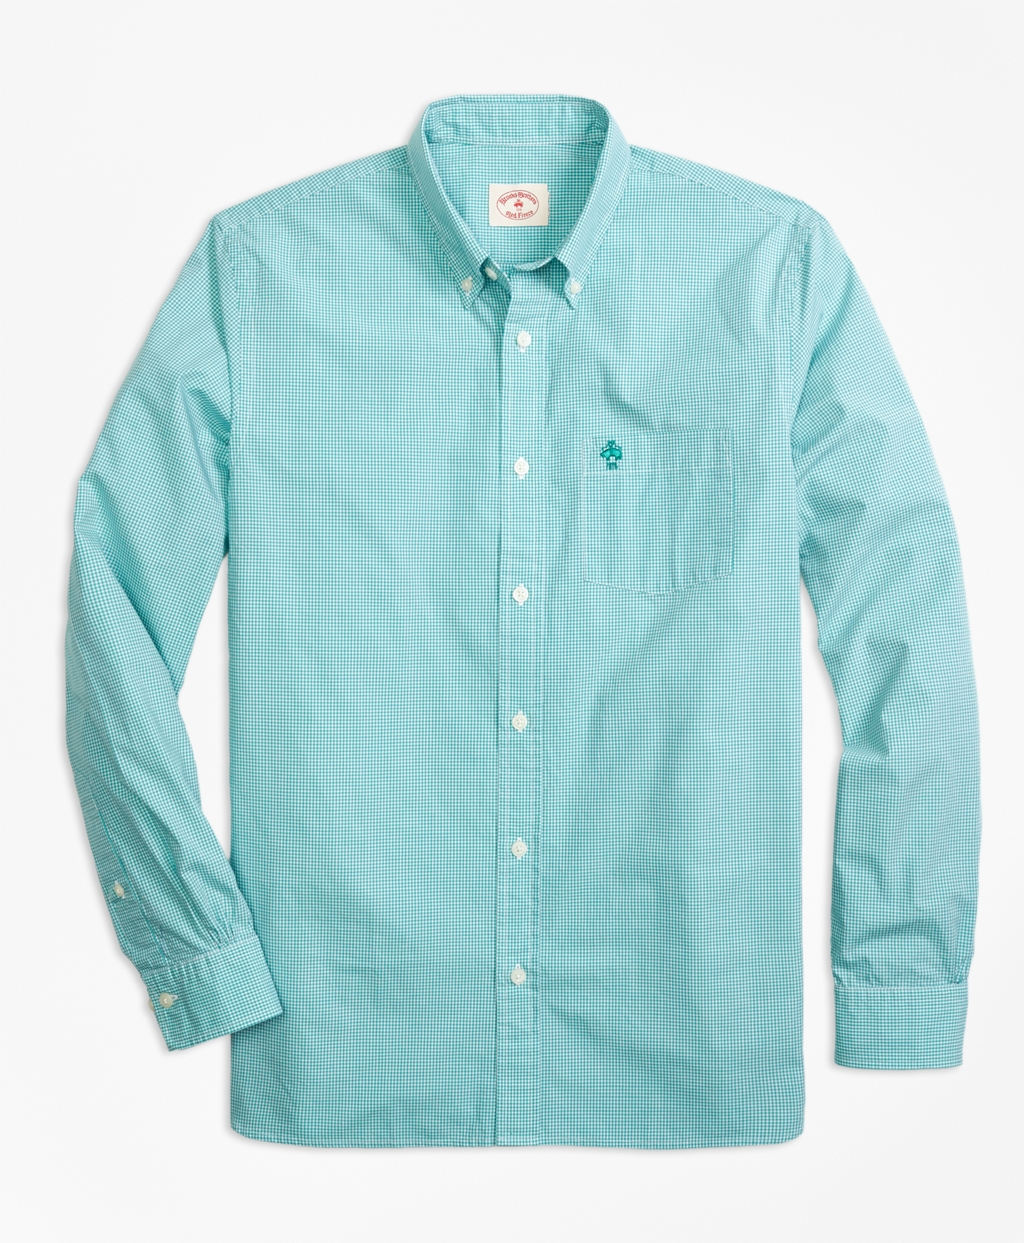 Lyst brooks brothers gingham sport shirt in green for men for Brooks brothers sports shirts